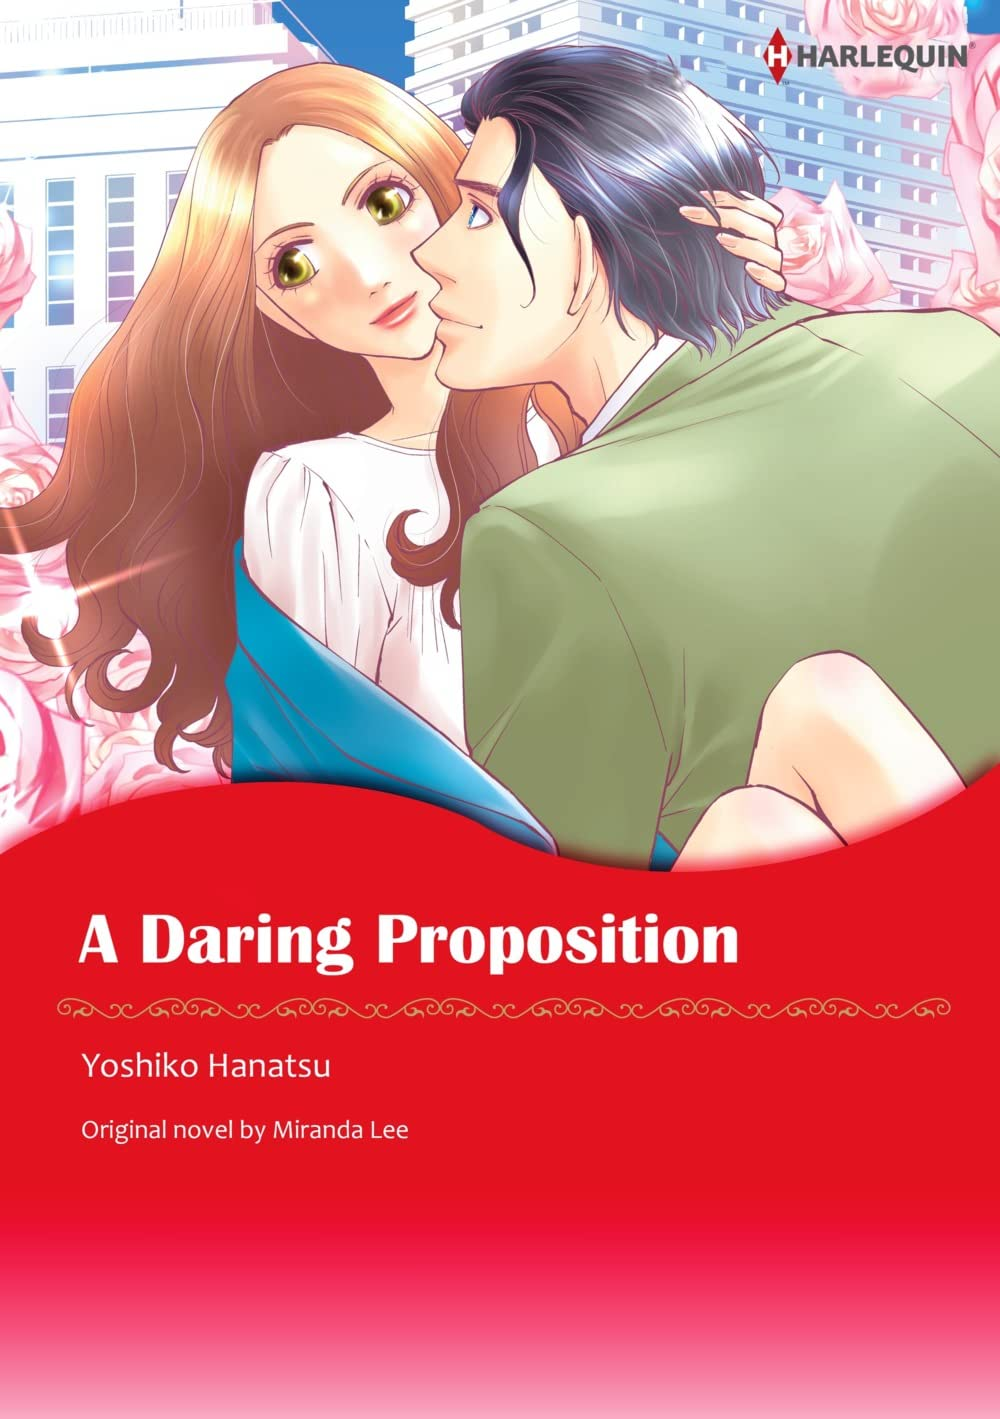 A Daring Proposition